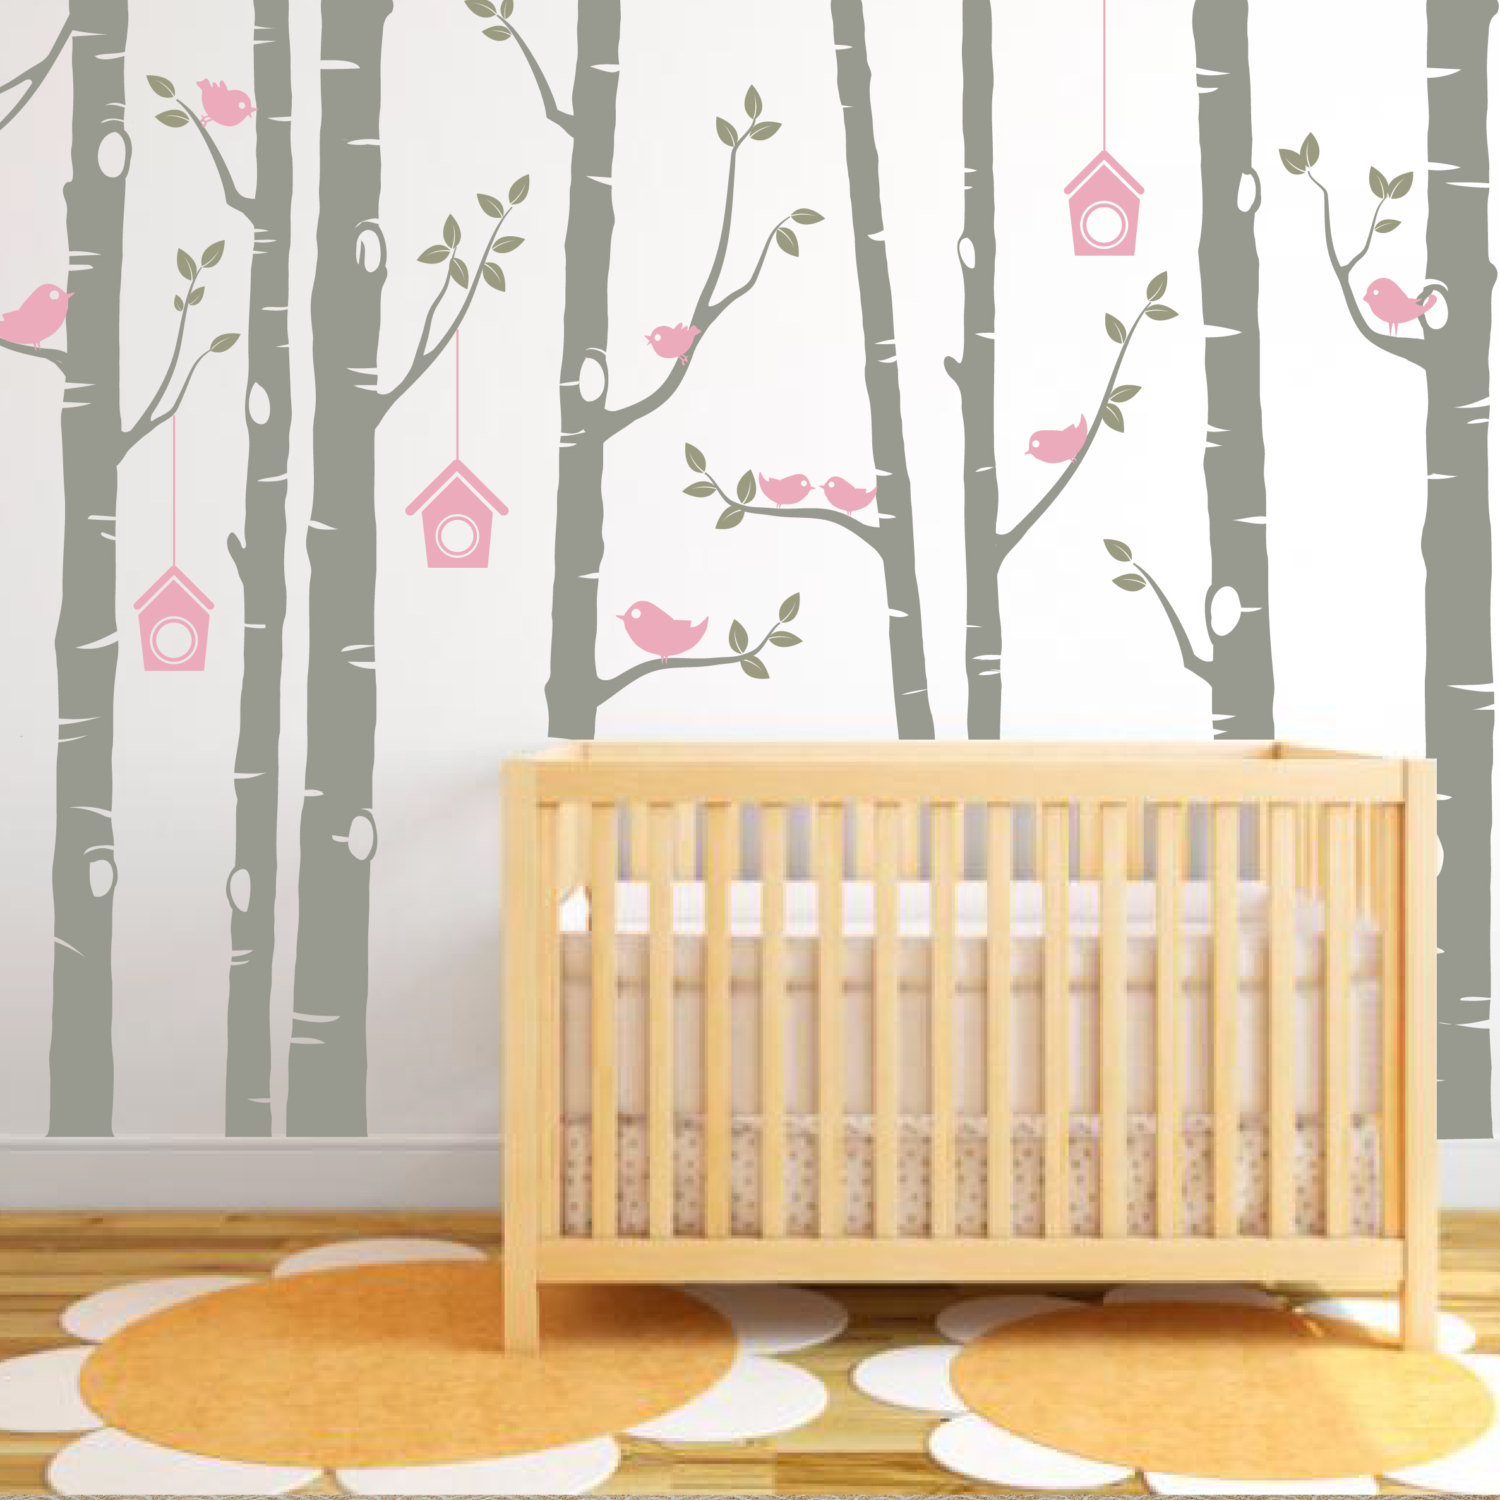 Birch Tree Decal, Birds Wall Sticker Set, Baby Nursery Wall Decals ...